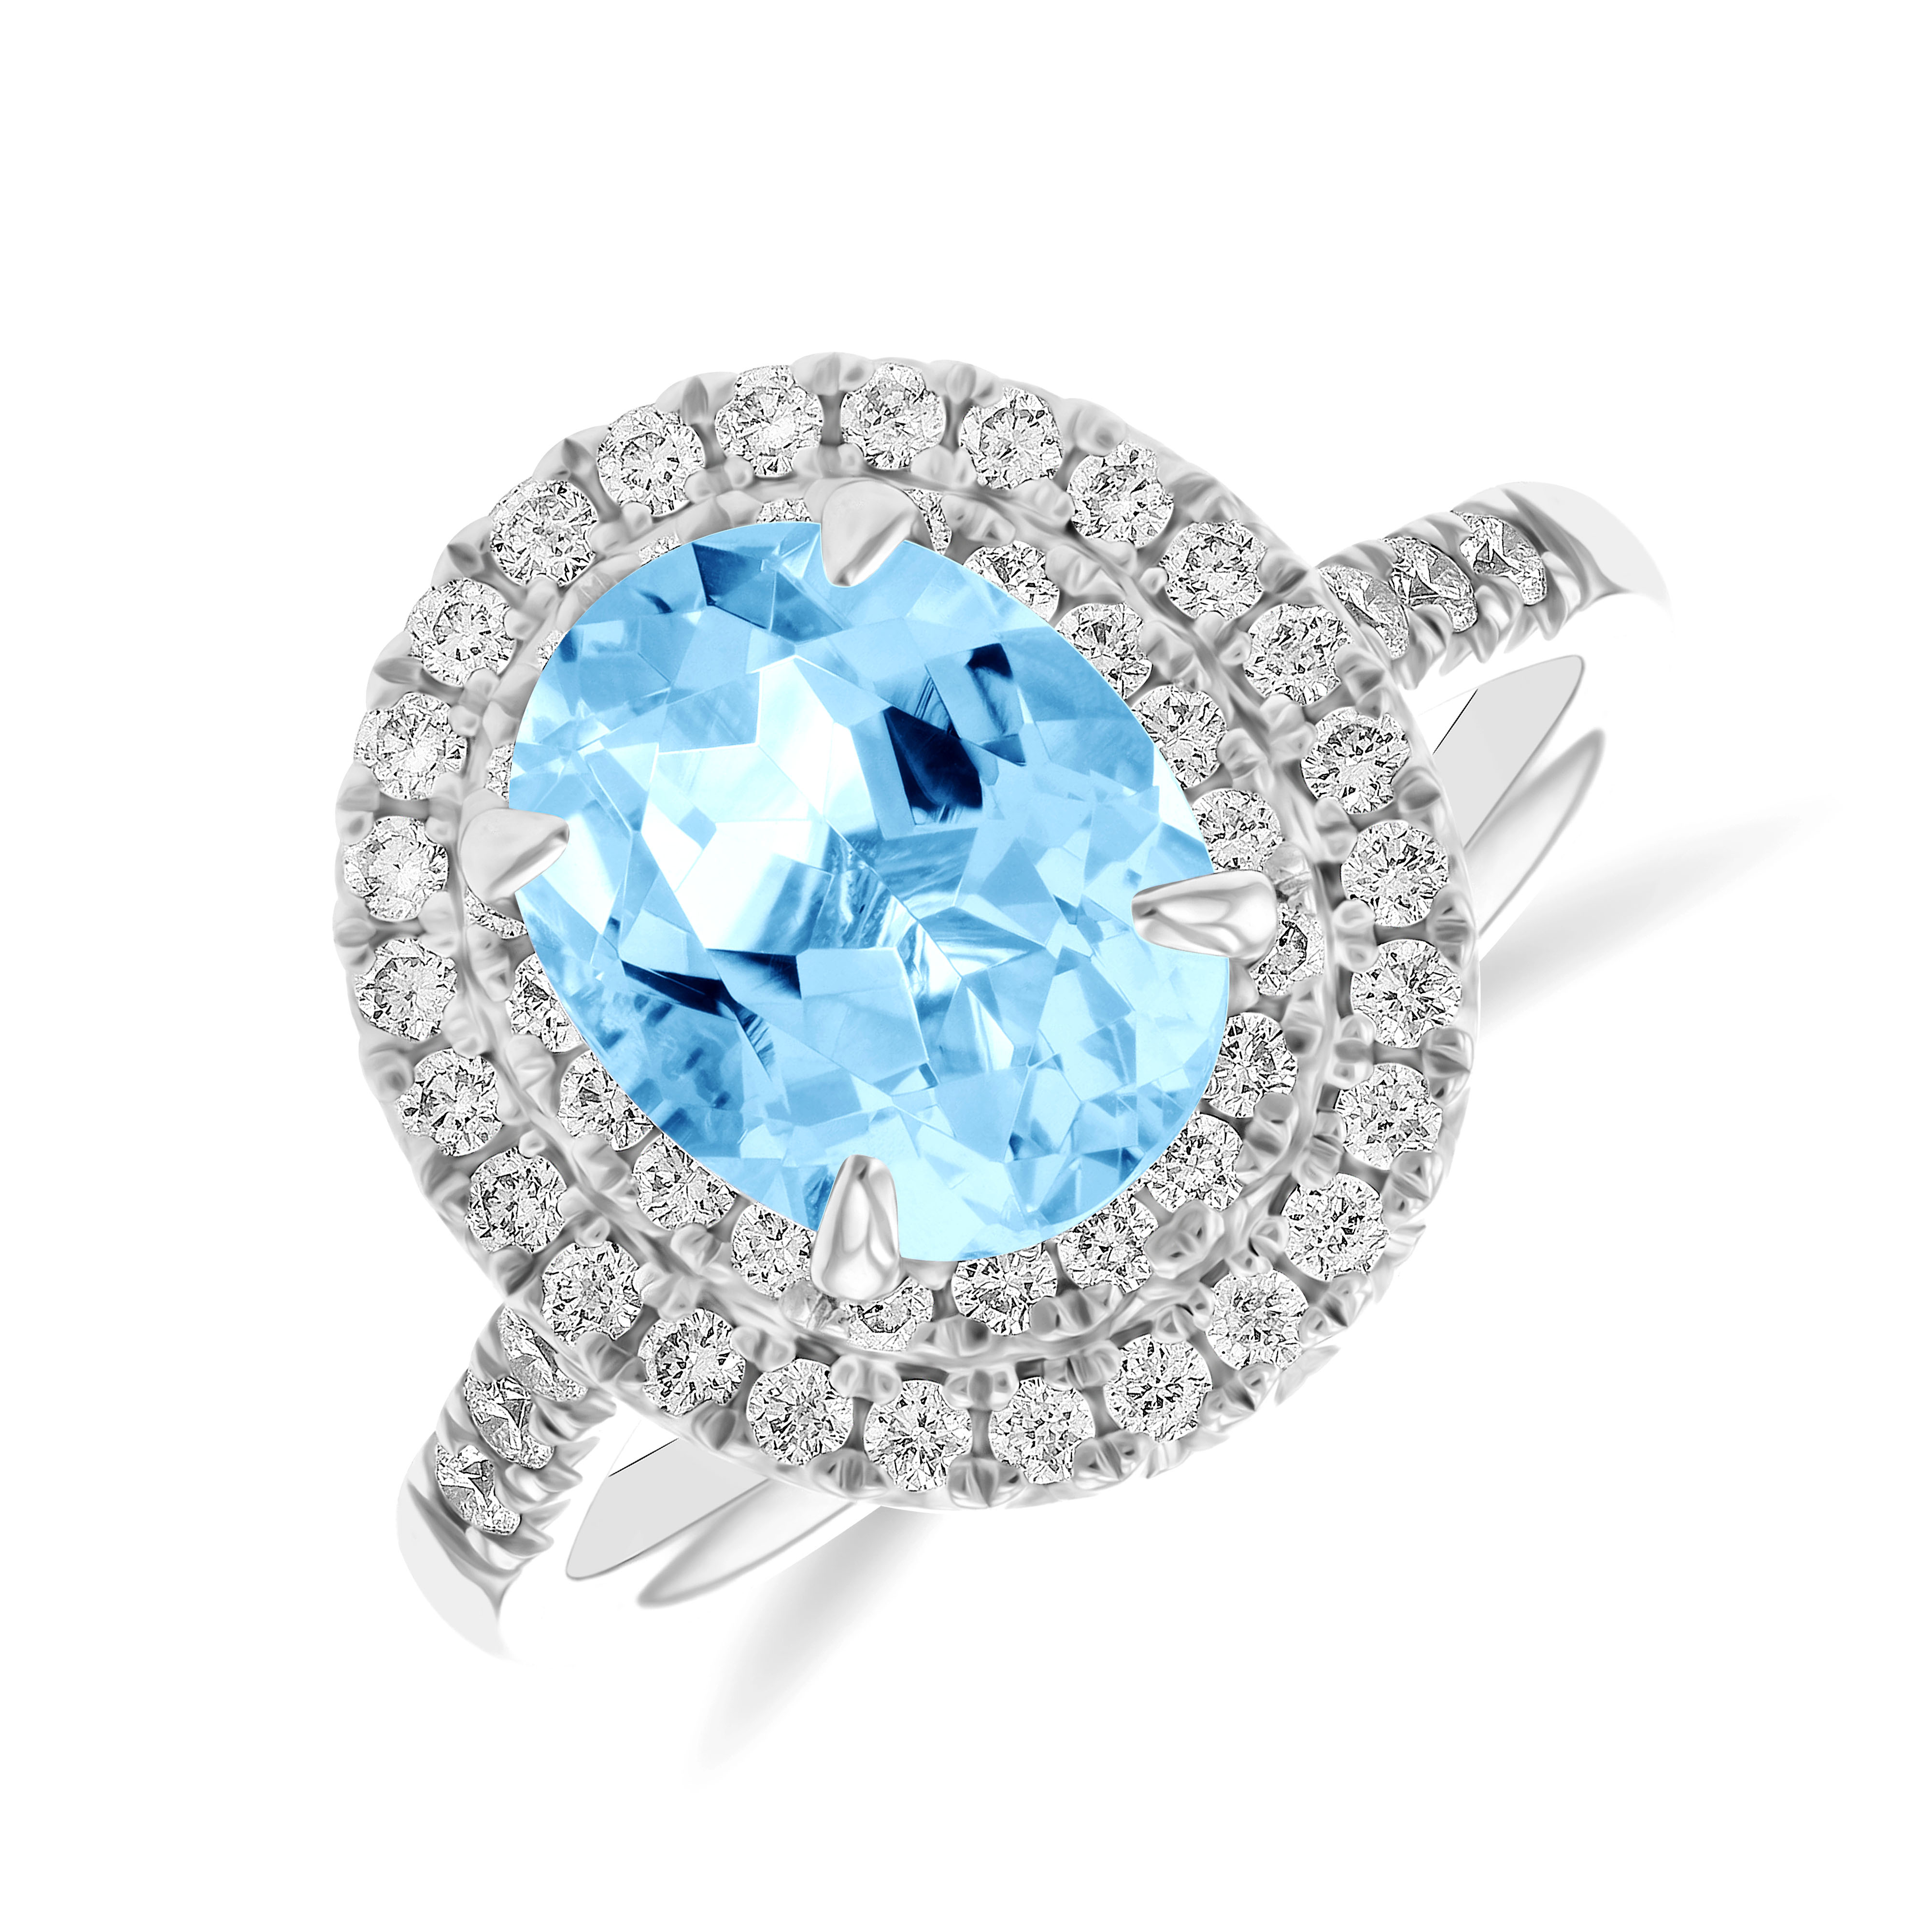 Riviera Collection 2.00ct Oval Aquamarine & Diamond Double Halo Ring   9K White Gold